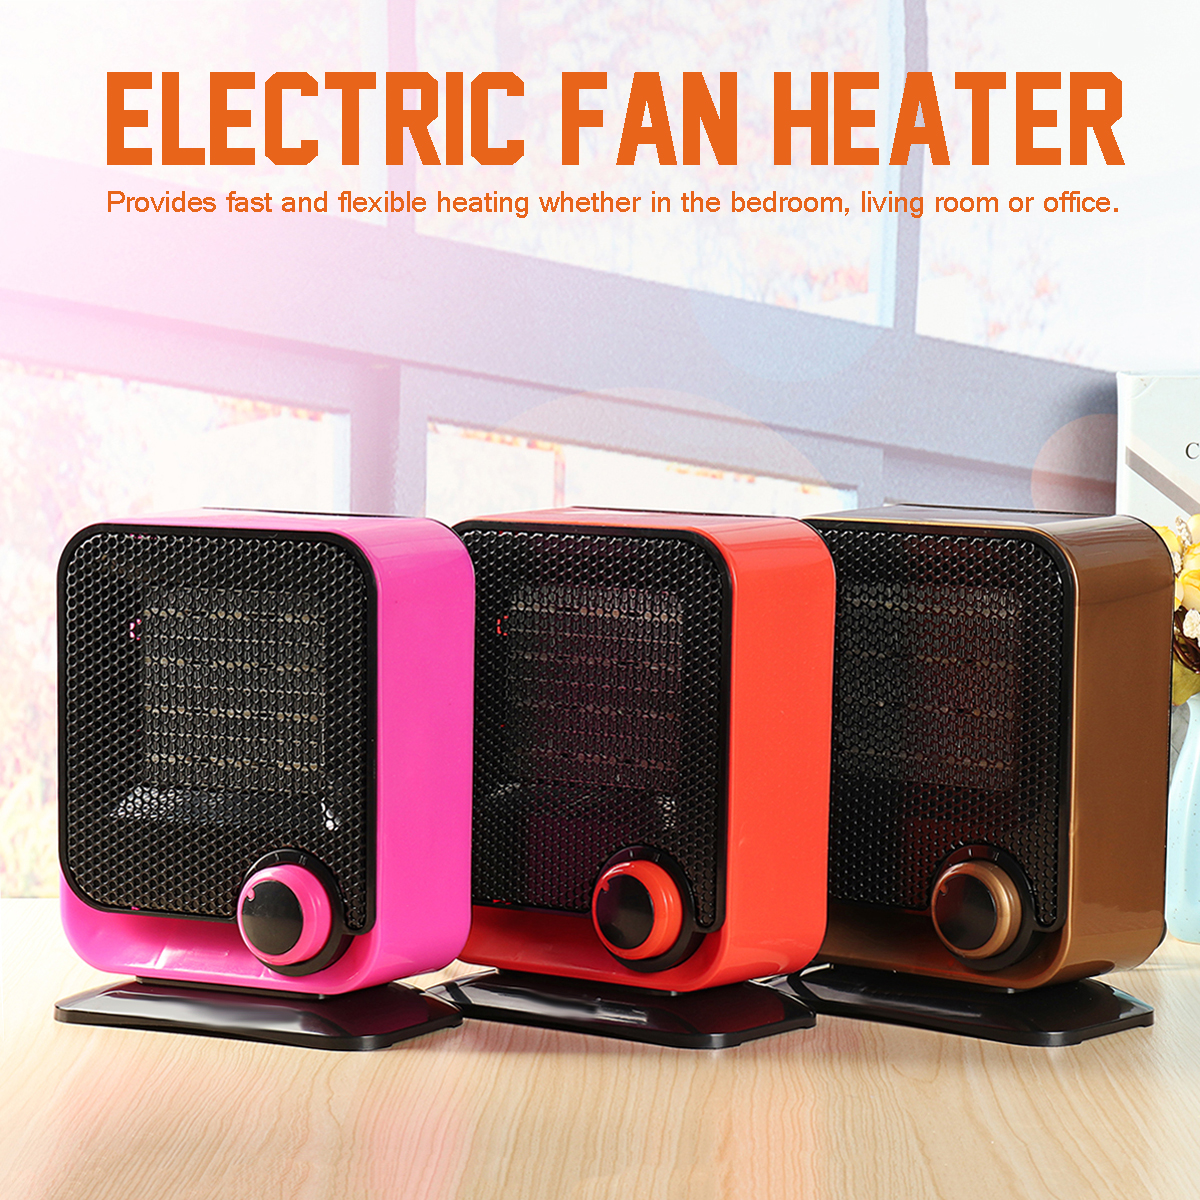 220V 1500W Electric Fan Heater Low-noise Adjustable Temperature Controller 3 Color to Choose